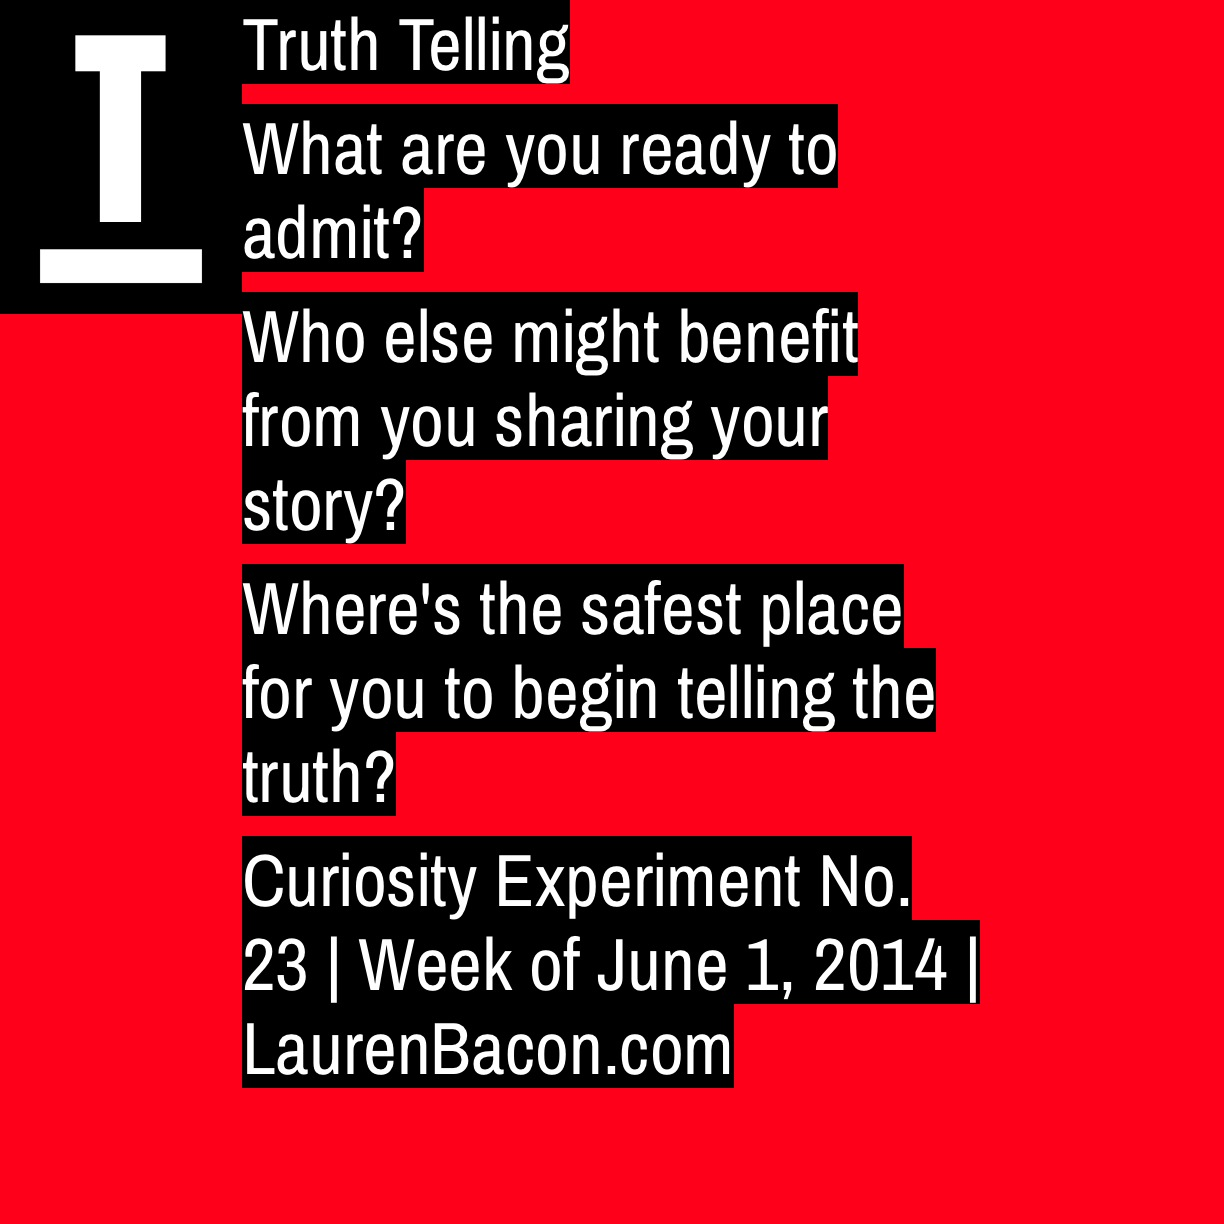 What Vulnerable Truths Are You Ready to Tell?